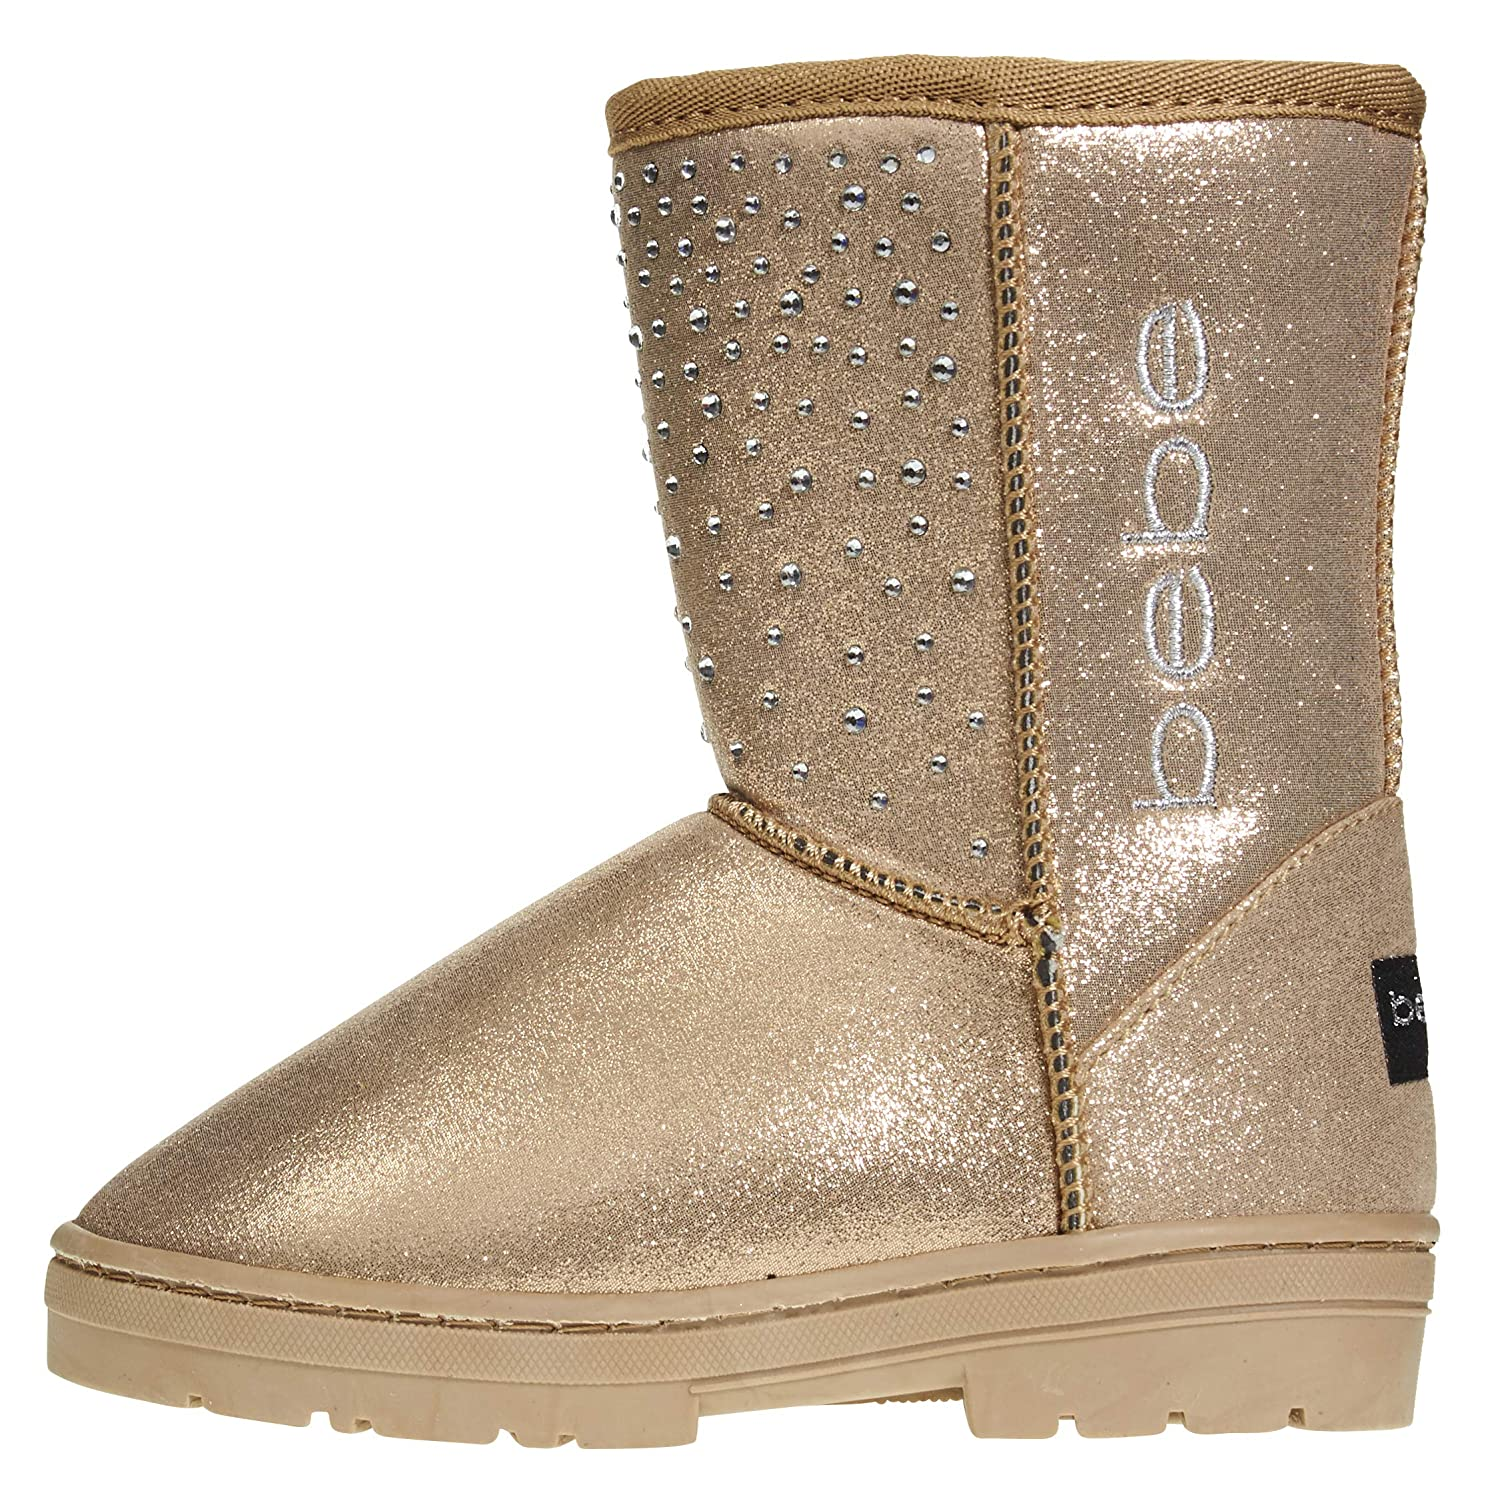 bebe Girls Shimmer Winter Boots with Rhinestone Casual Warm Slip-On Shoes